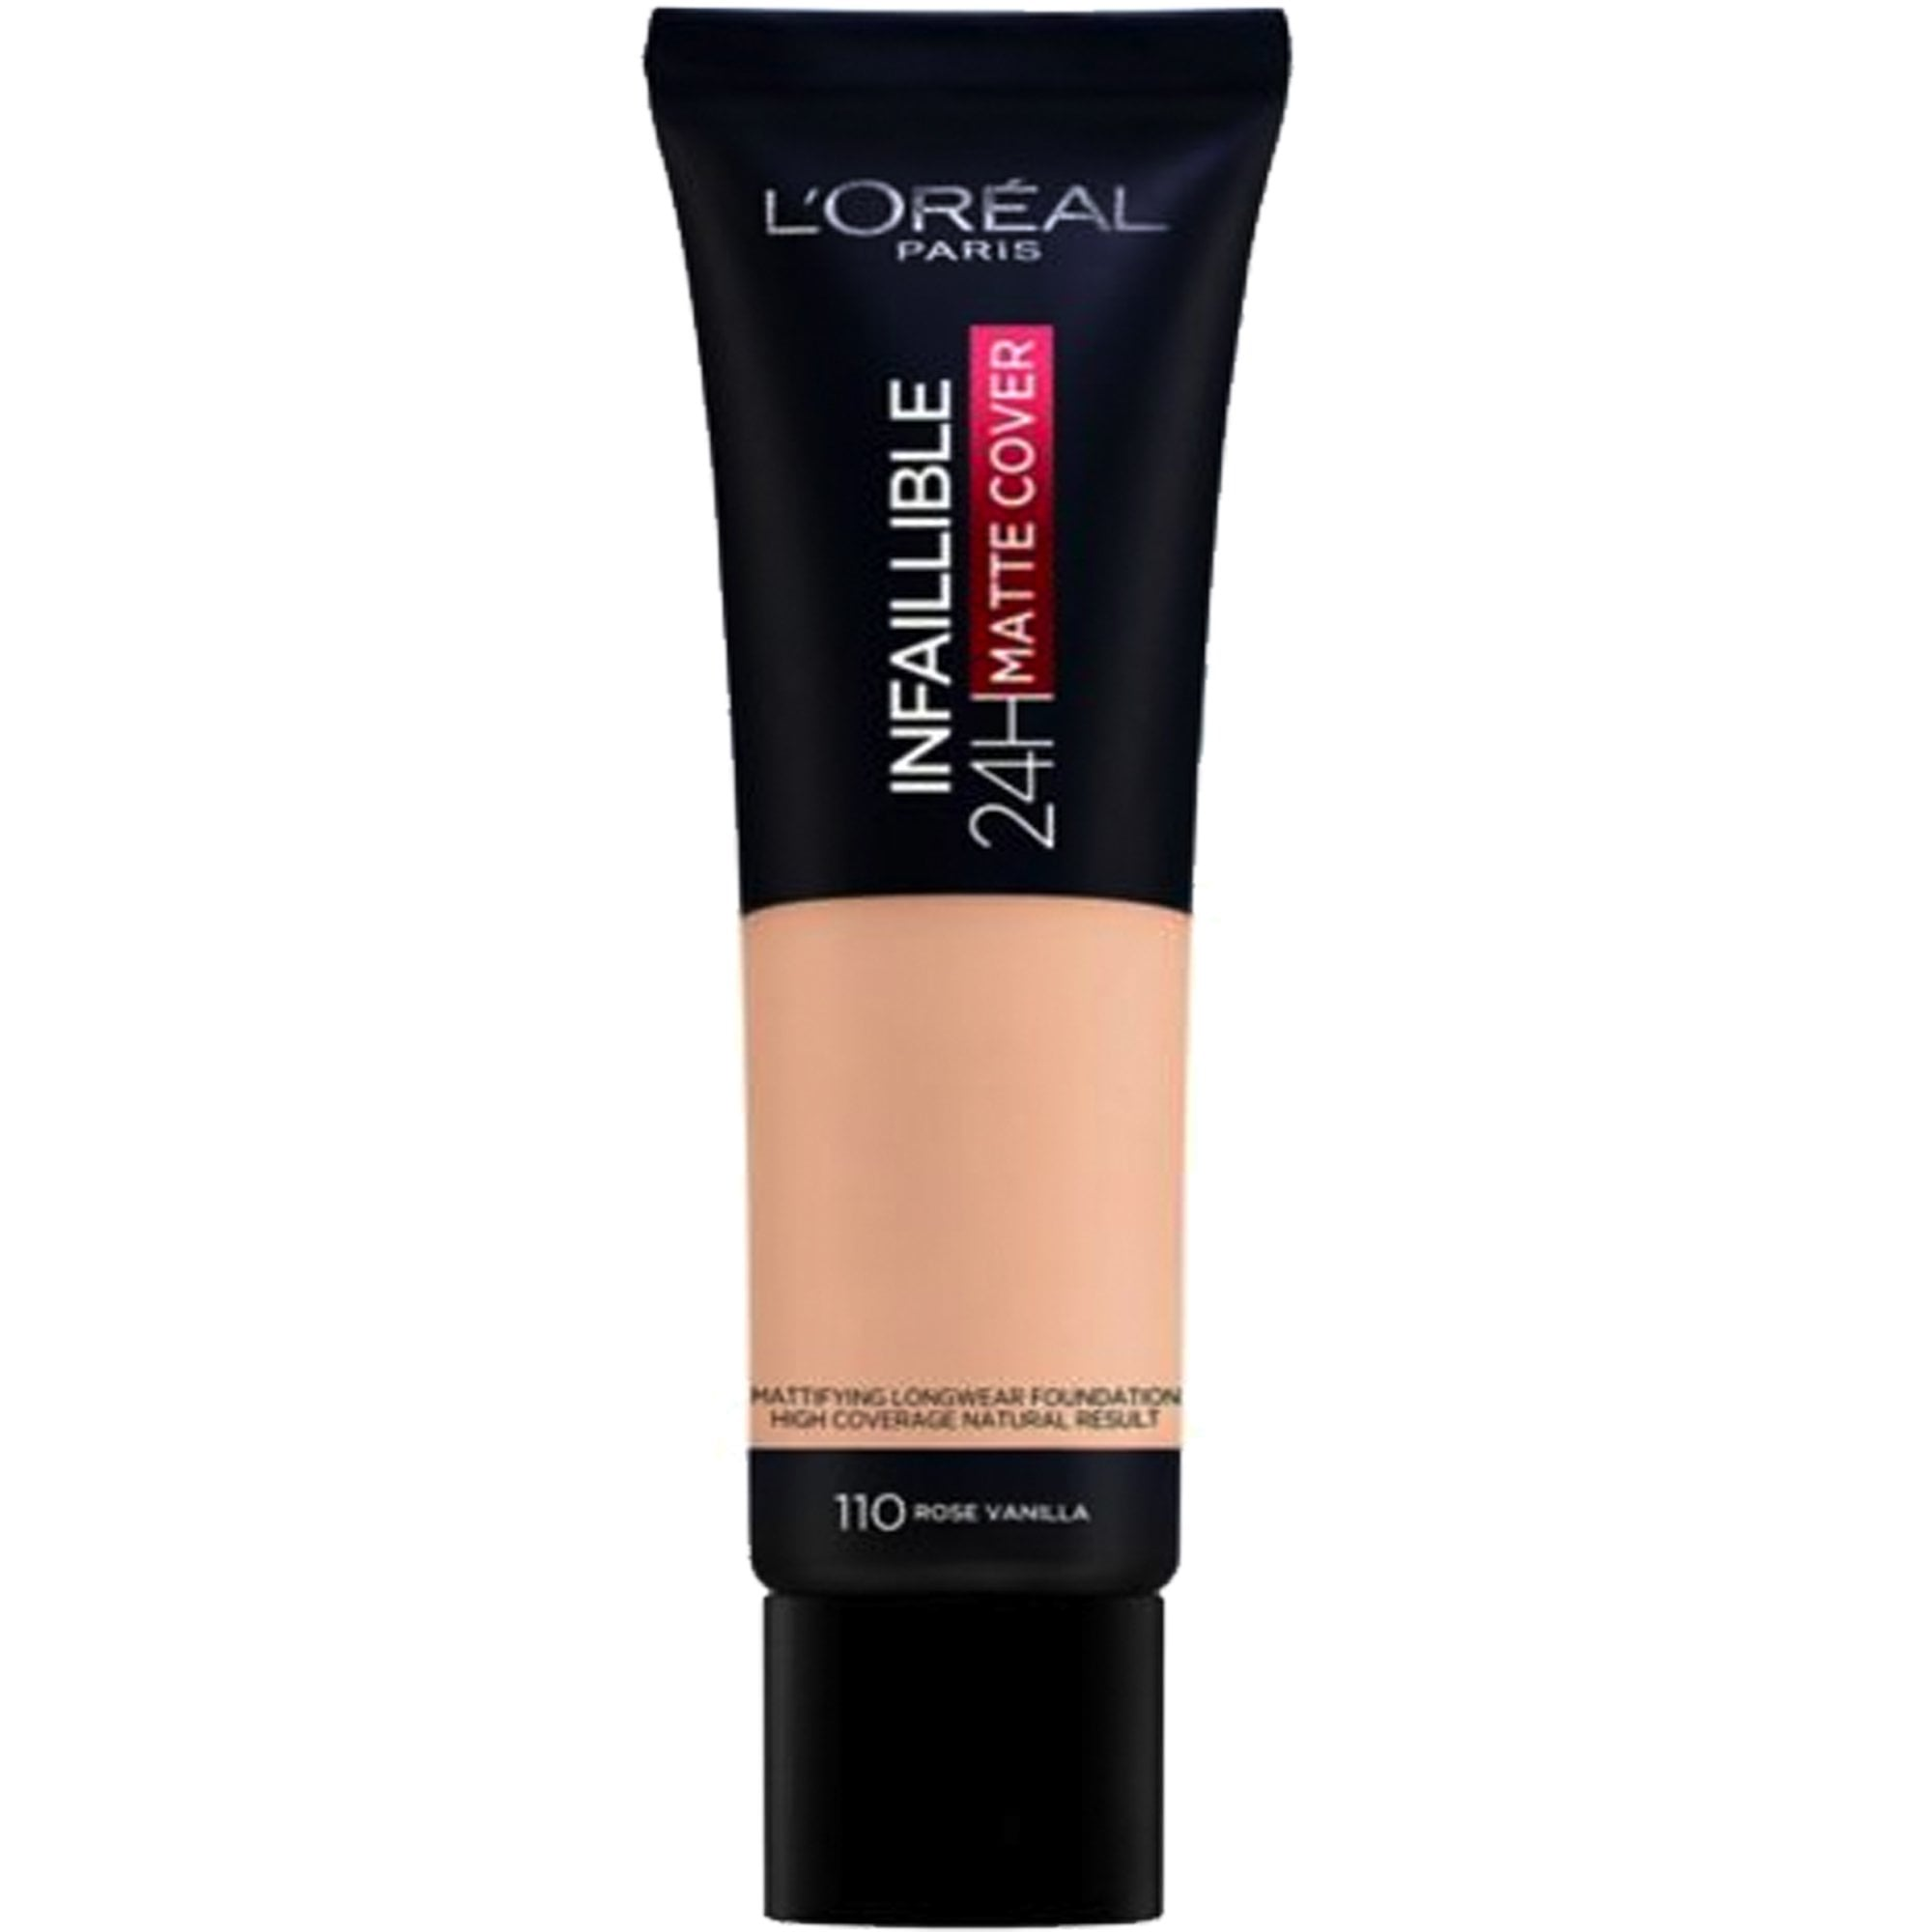 L Oreal Infallible 24h Matte Cover Foundation Rose Vanilla 110 30ml